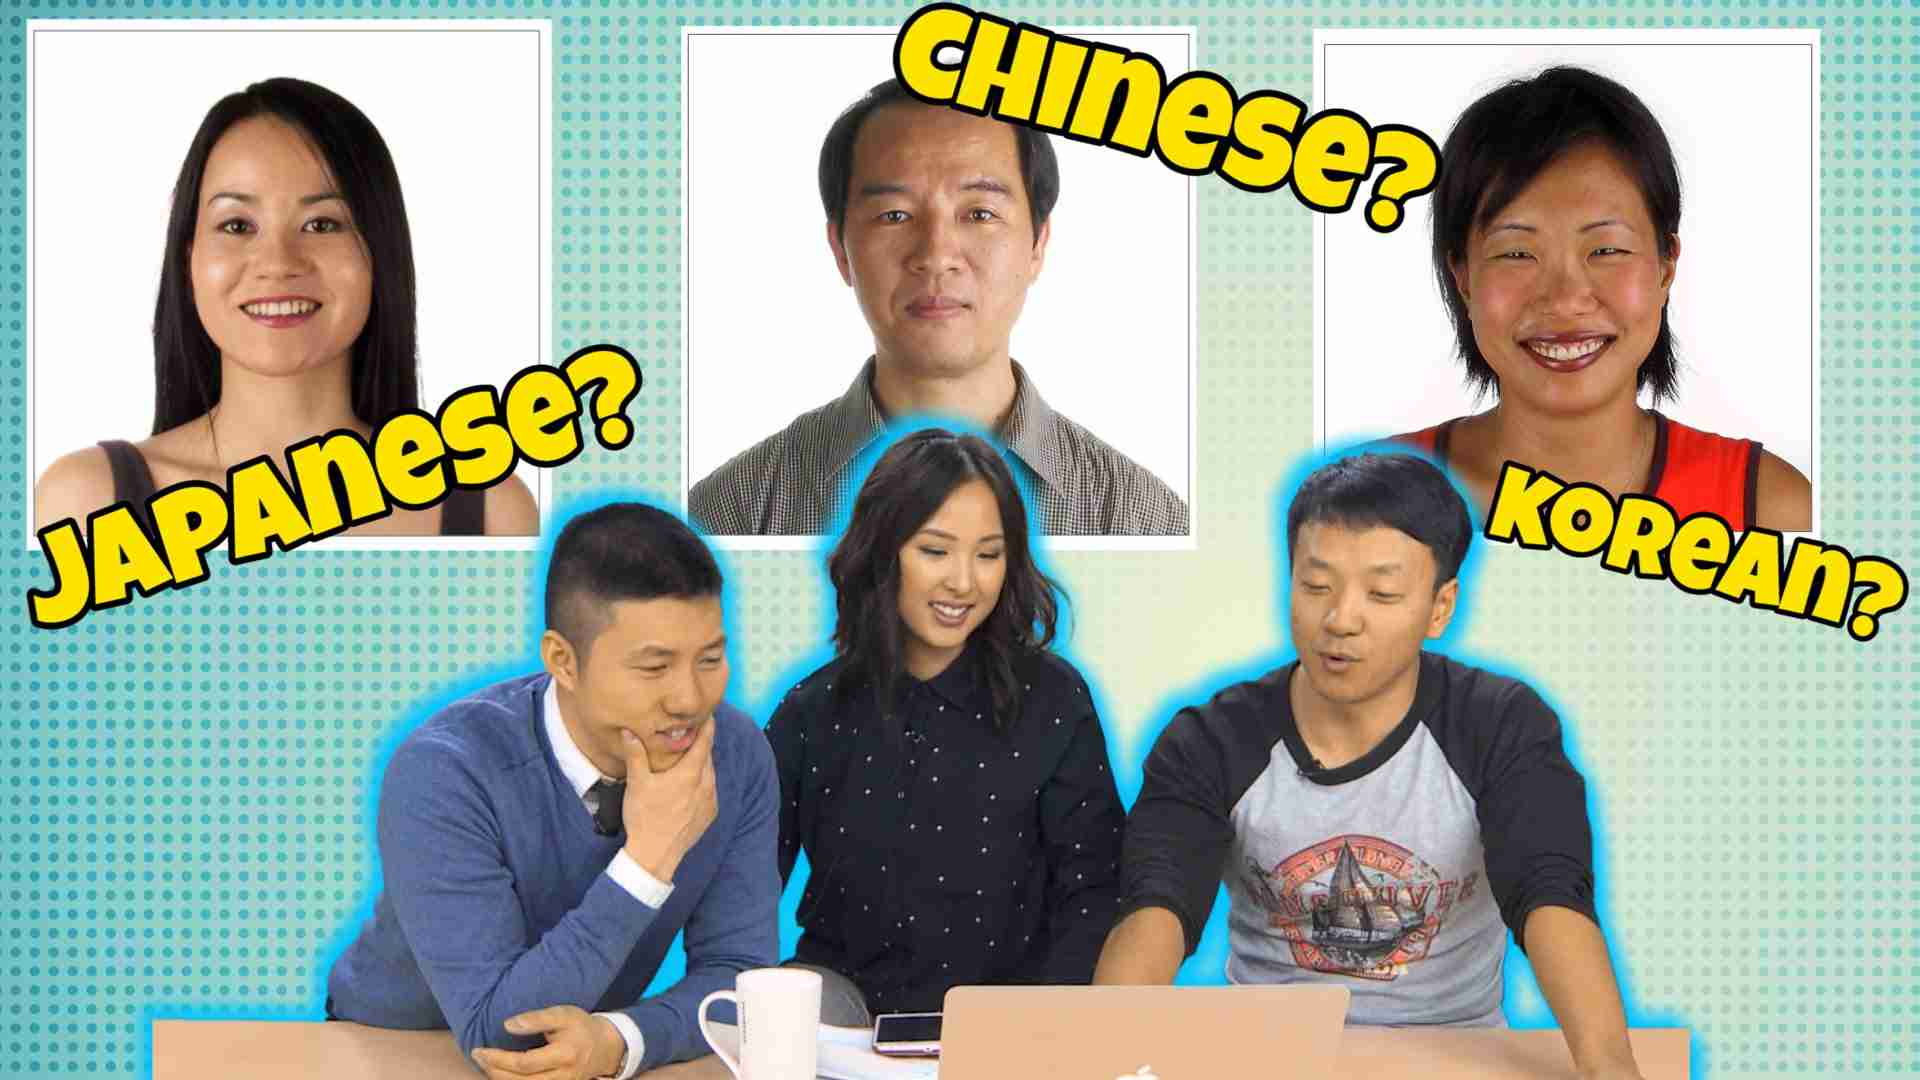 How To Tell Chinese, Koreans and Japanese Apart - YouTube